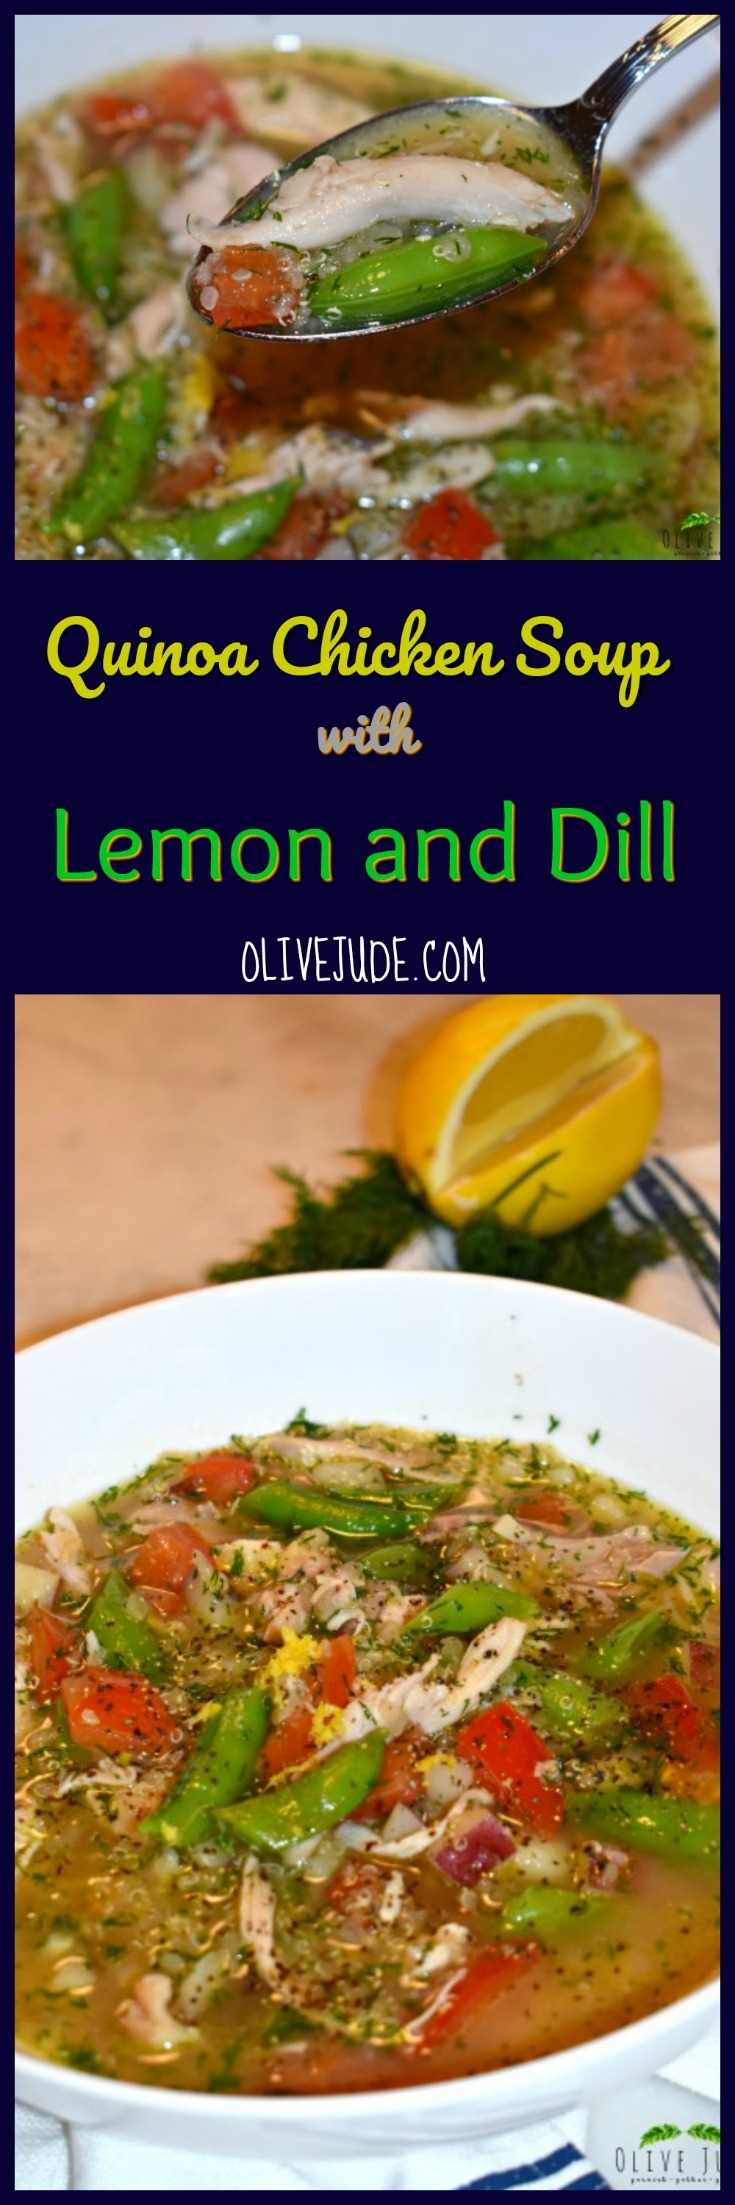 Quinoa Chicken Soup with Lemon and Dill #quinoachickensoup #lemonanddill #easychickensoup #quicksouprecipe #quinoasoup